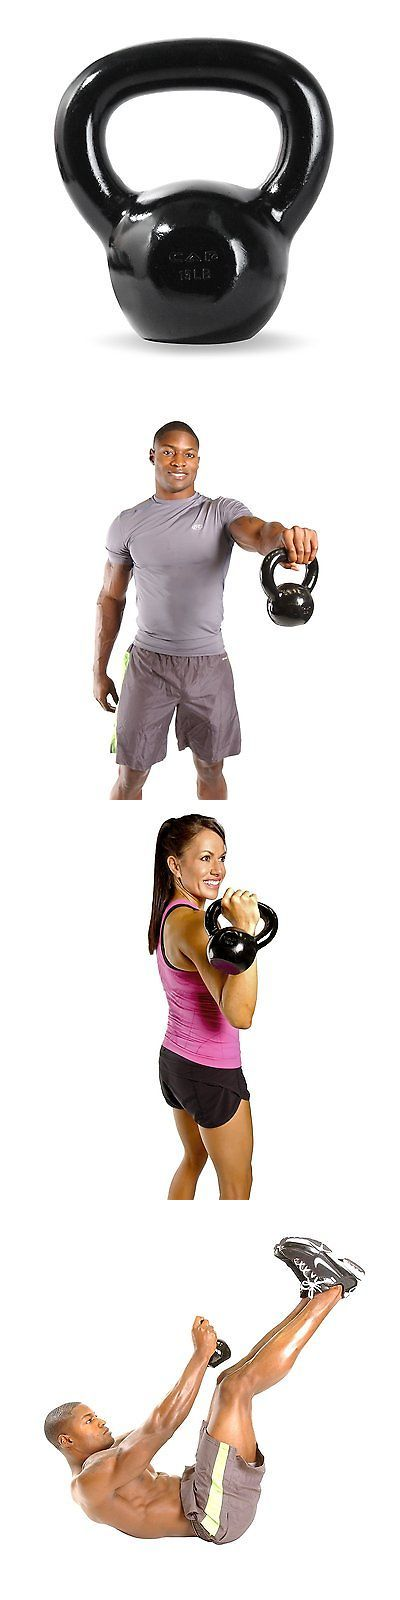 Kettlebells 179814: Cap Barbell Kettlebell 10 Lb Pounds Workout Muscle Balance Training Fitness Gear BUY IT NOW ONLY: $35.44